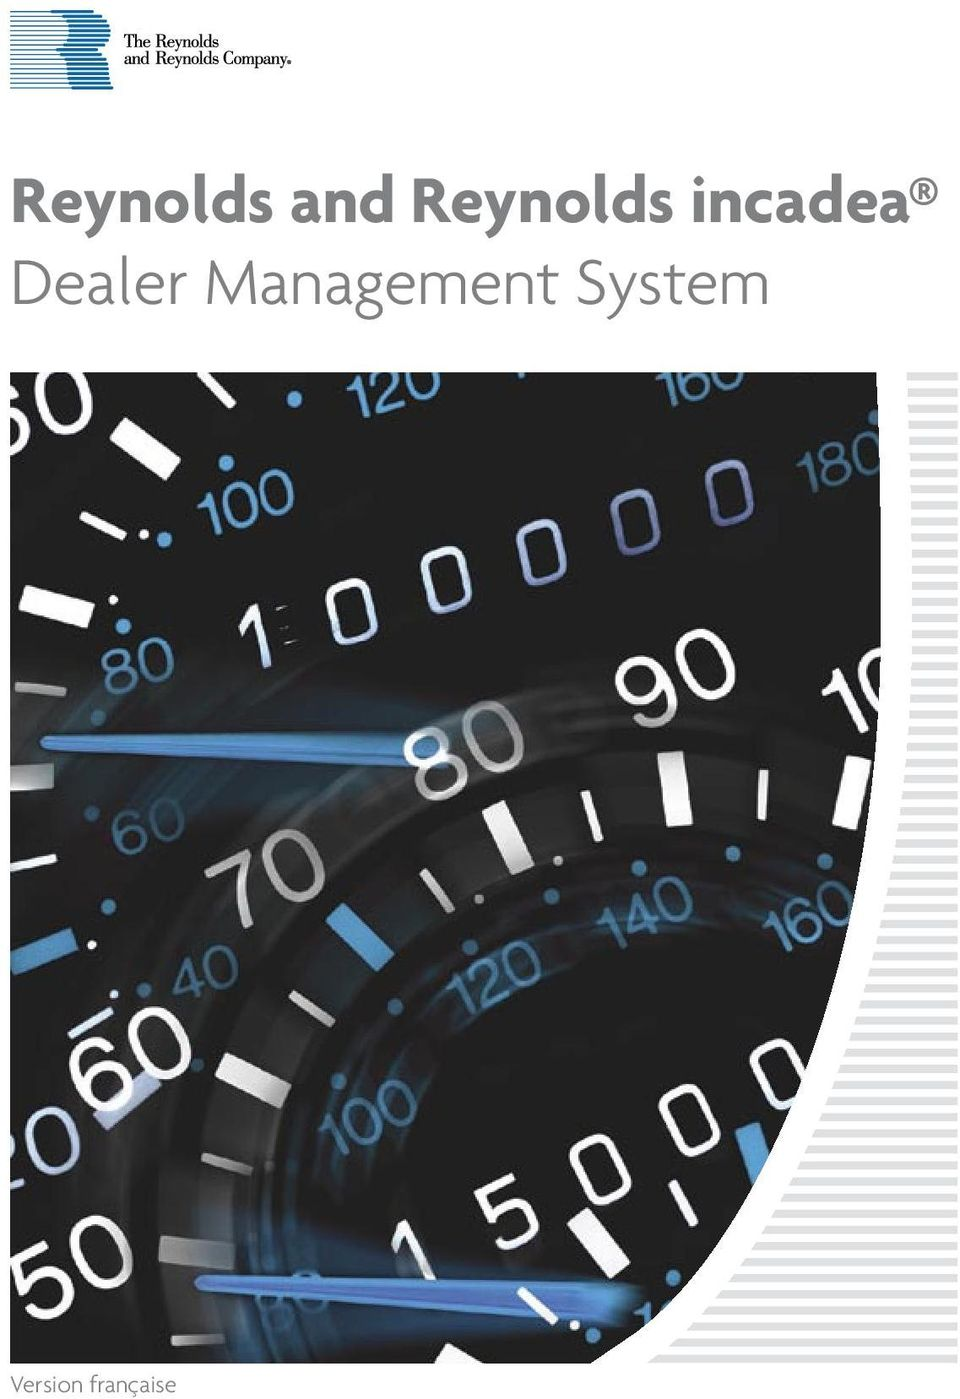 Dealer Management